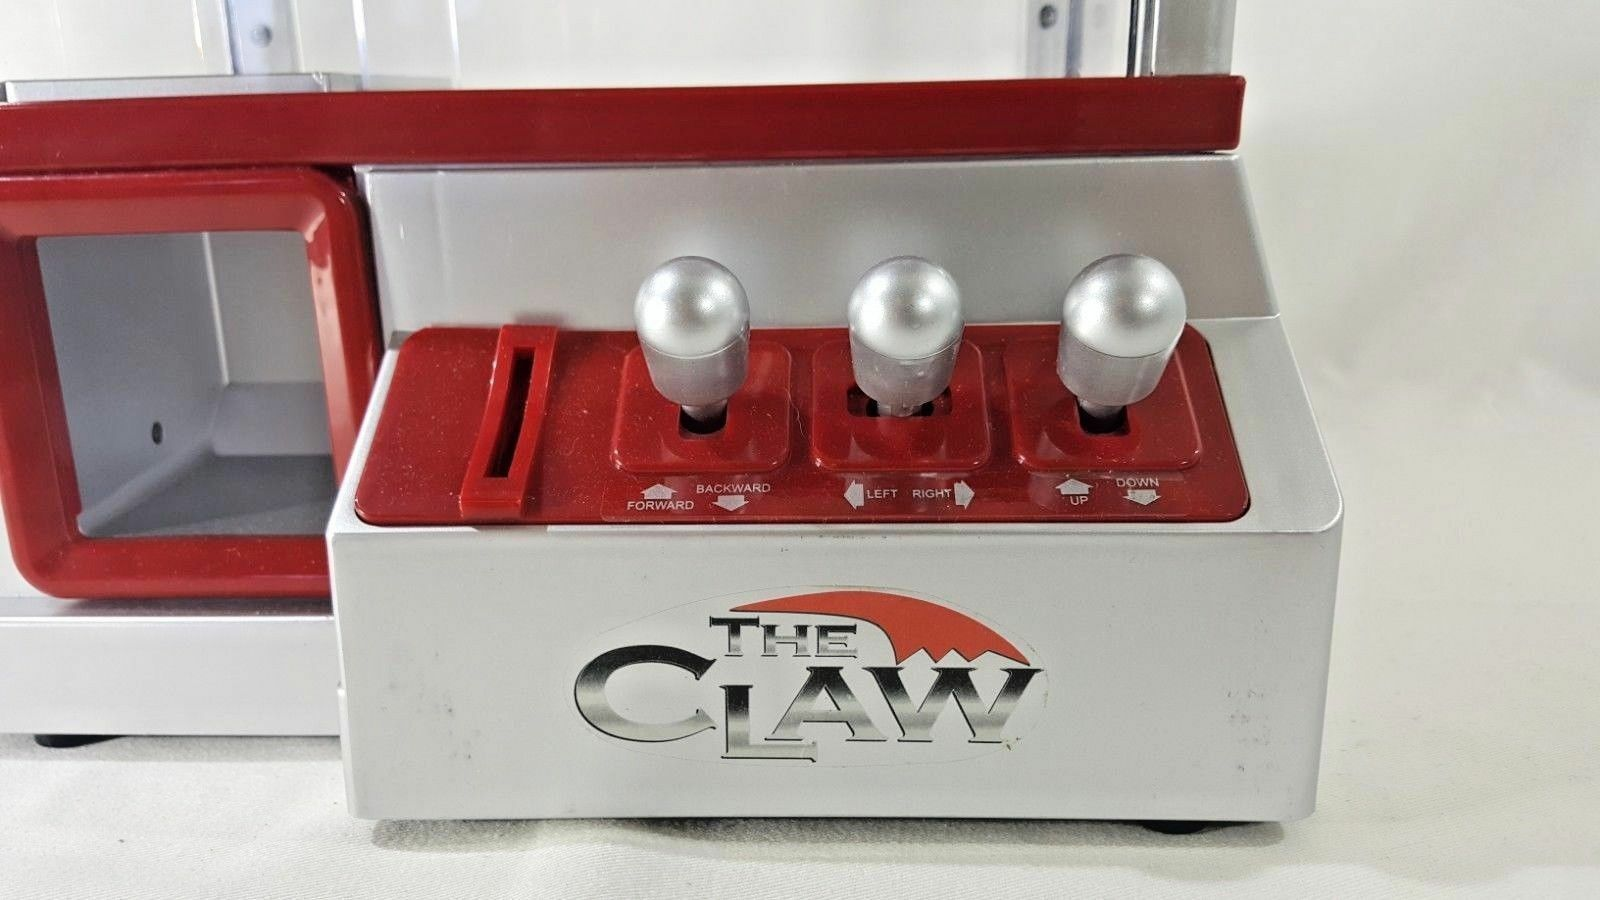 Etna The Claw Toy Grabber Machine Sounds Toy Electronic Arcade Game Brand New